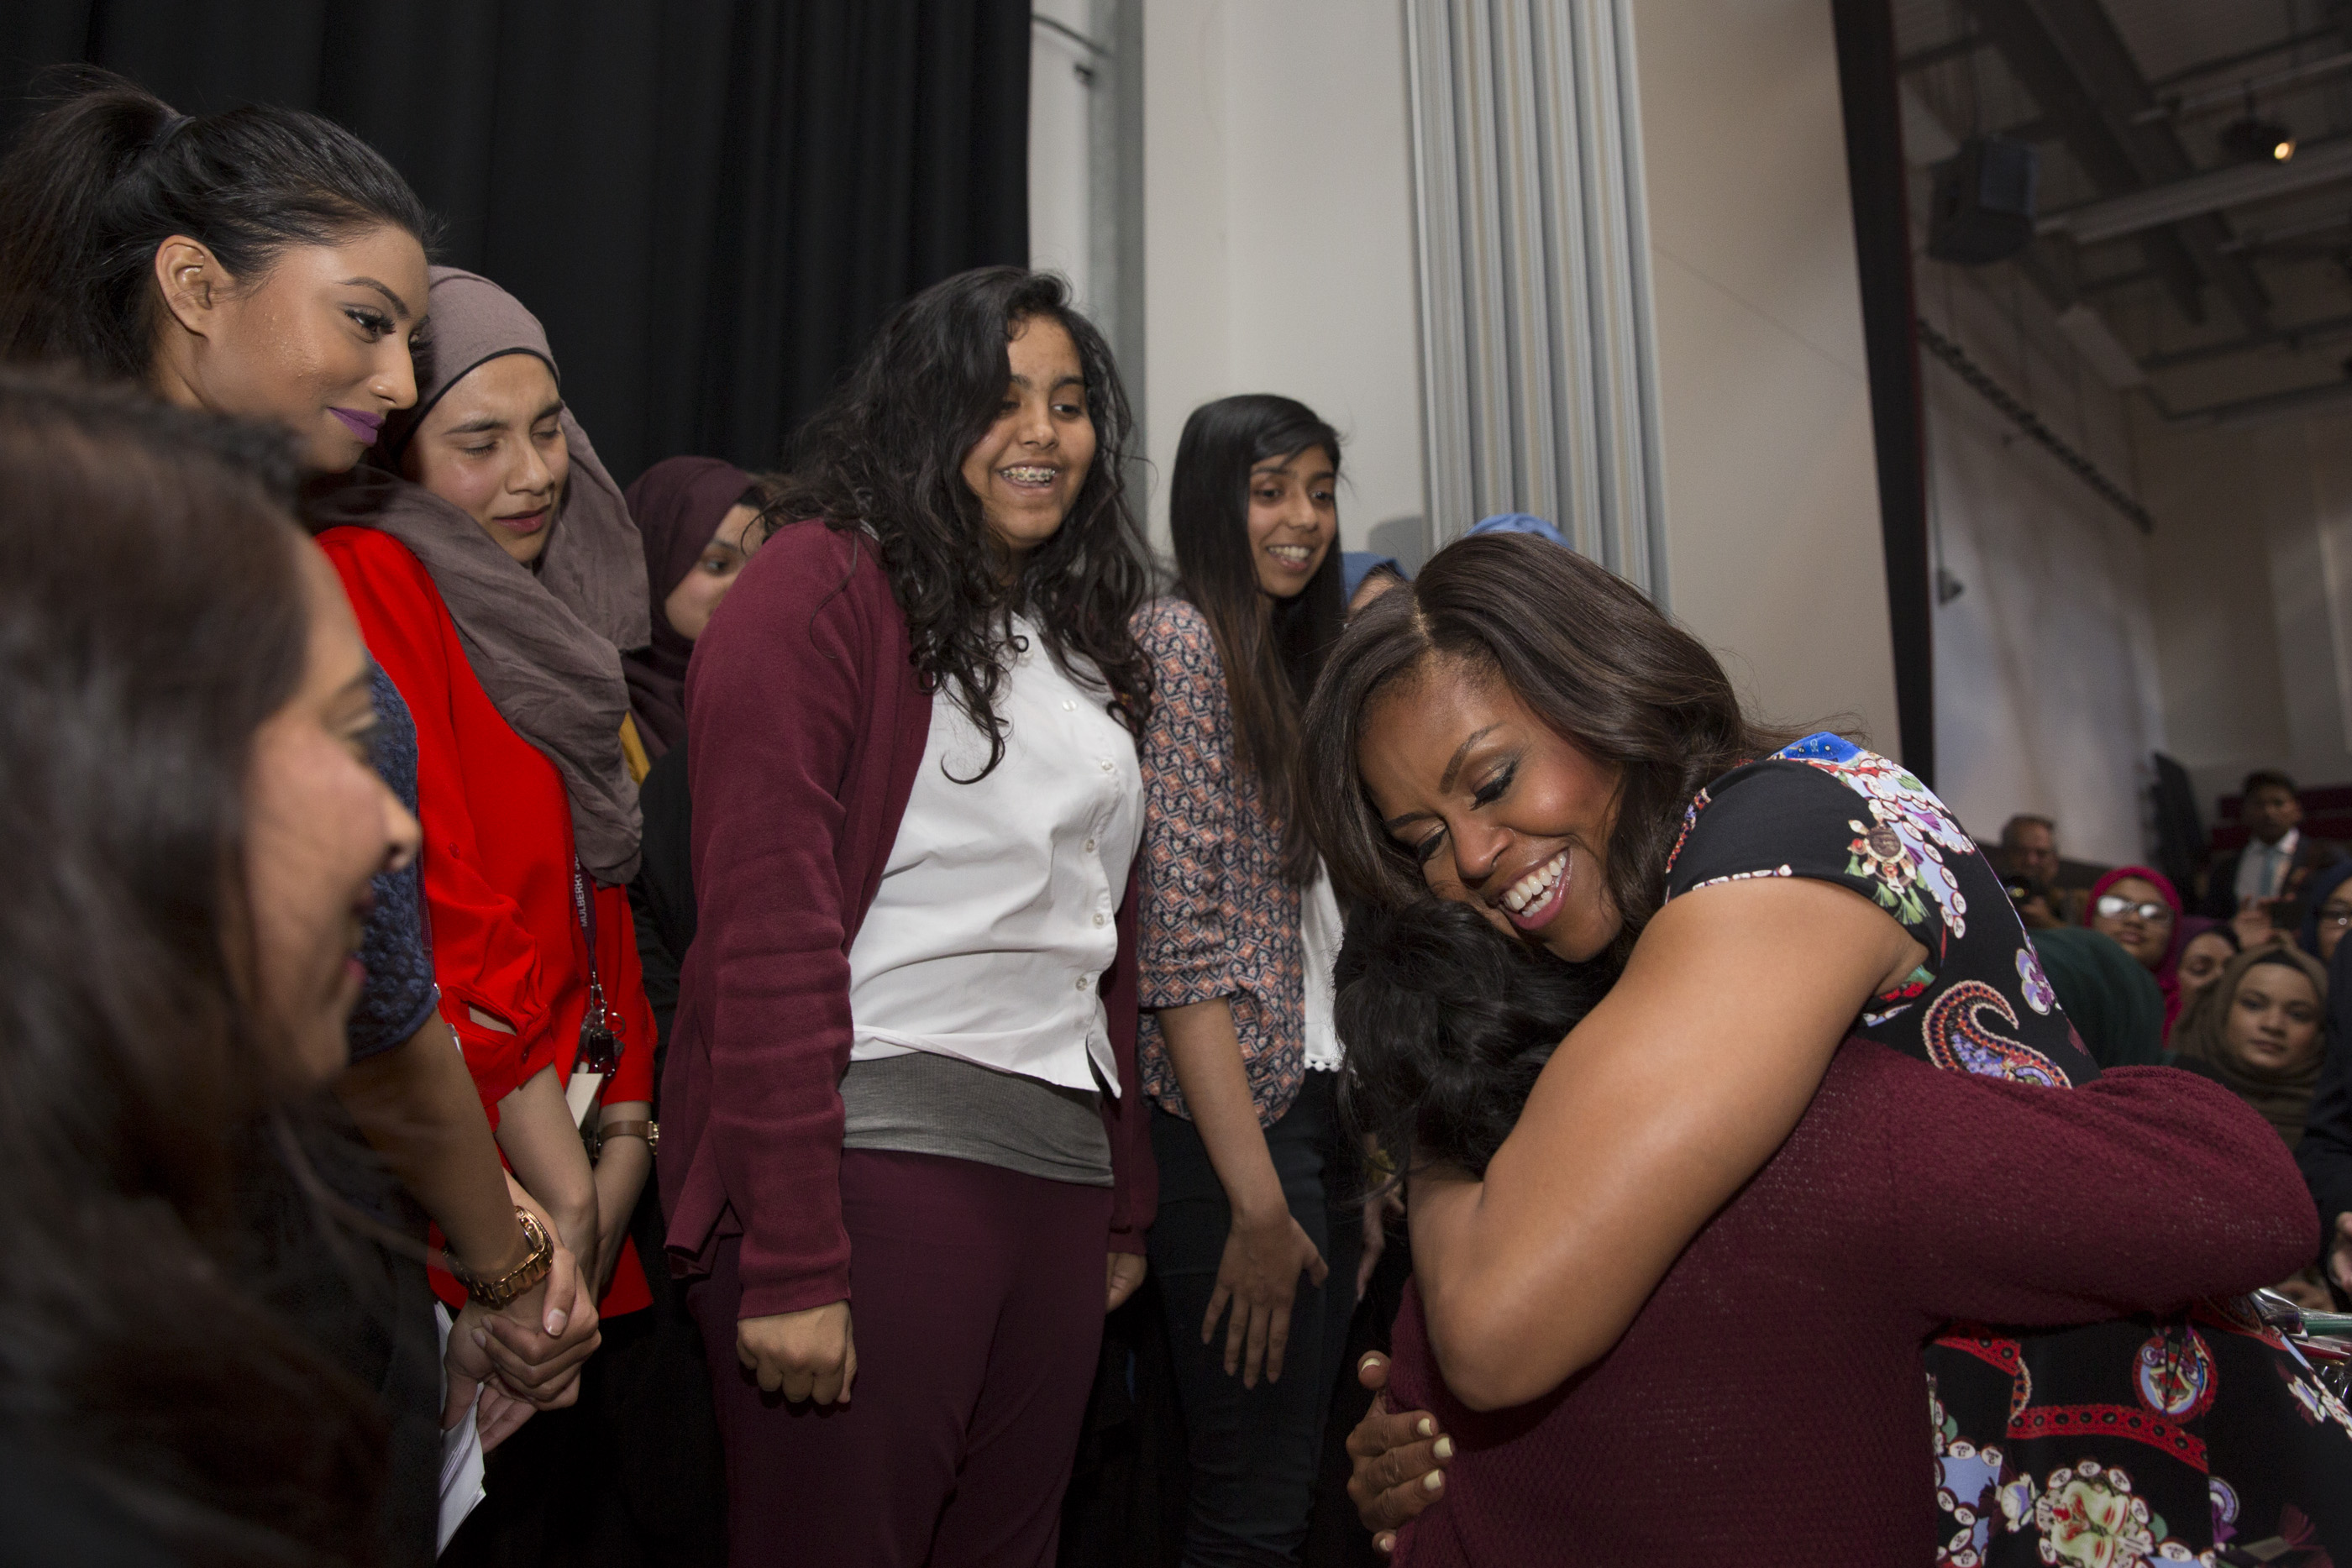 The First Lady Greets Students at the Mulberry School in London